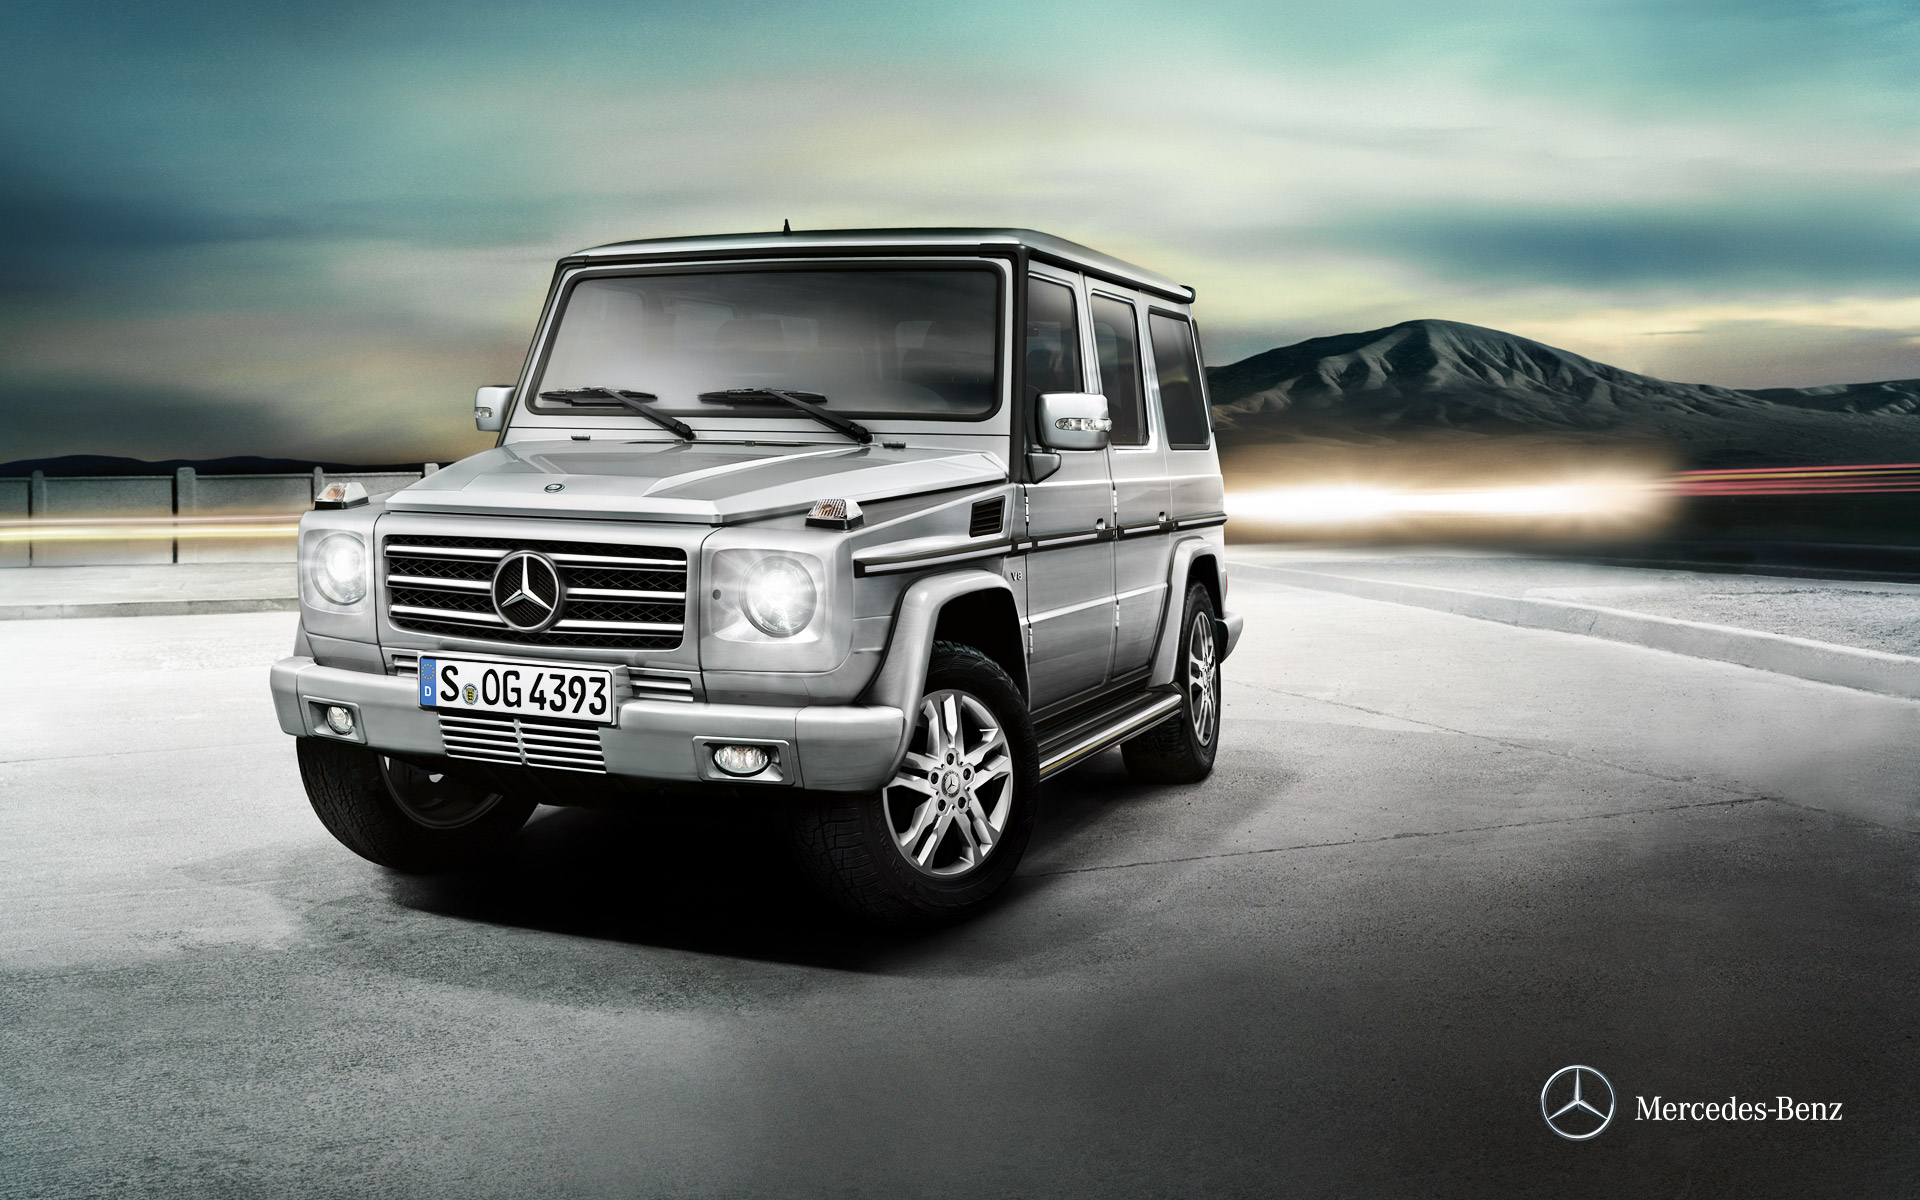 Mercedes benz g class 2012 g 500 in oman new car prices for Mercedes benz g class 2012 price